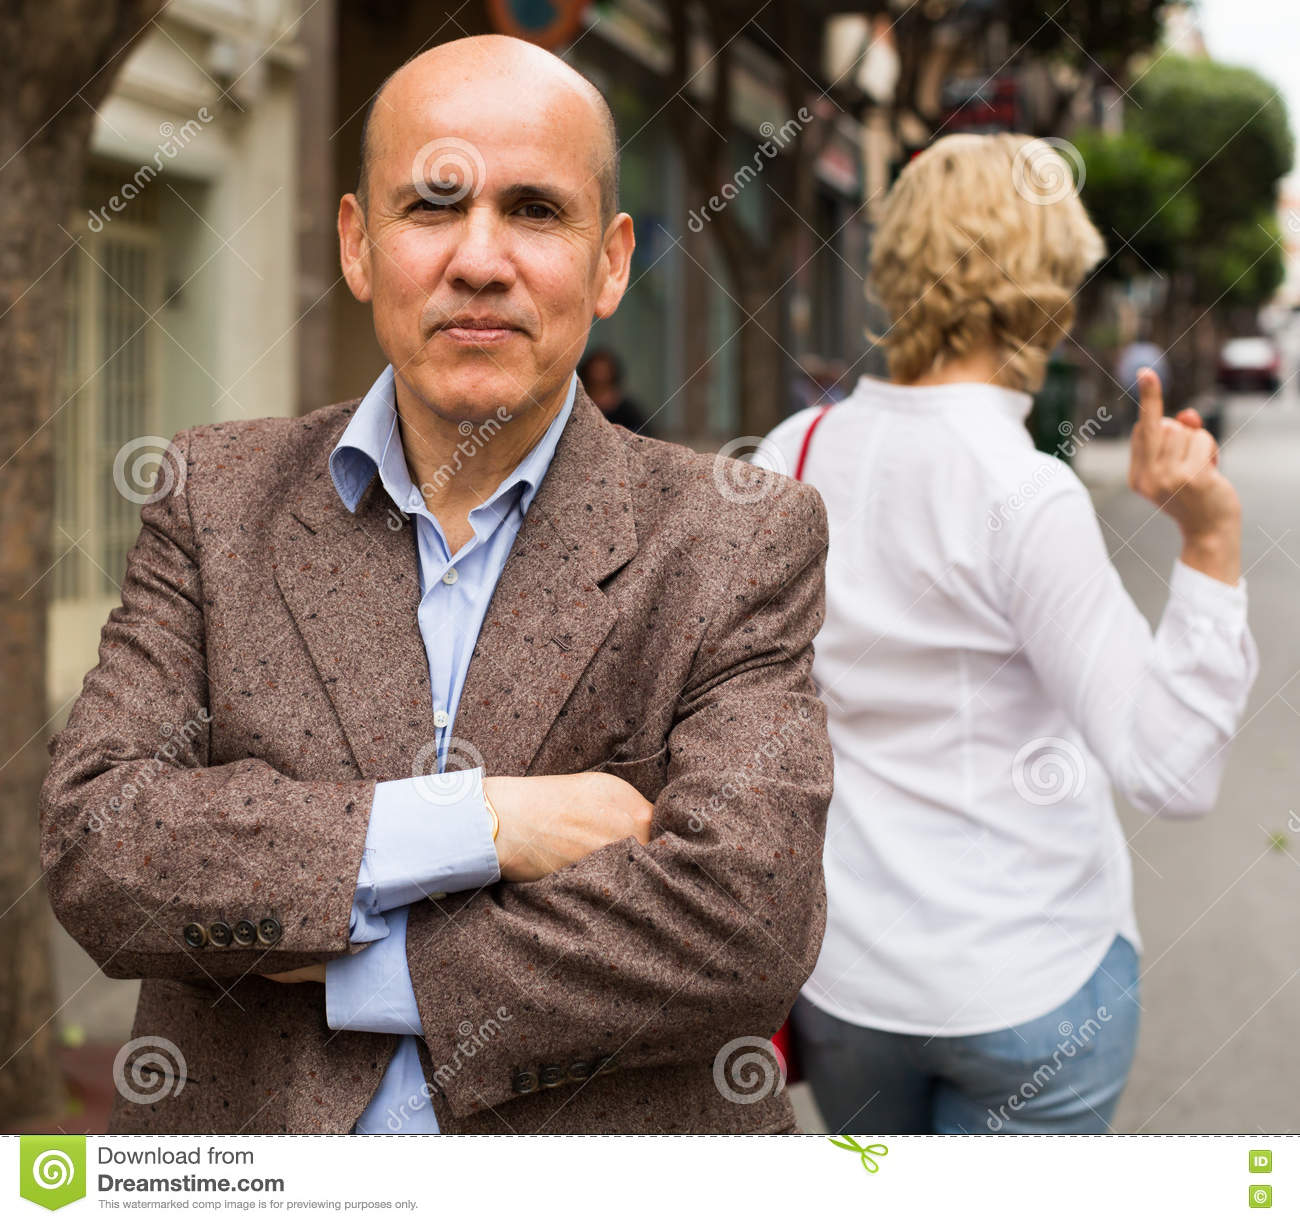 Angry Man Outdoors Stock Photo Image Of Closeup City